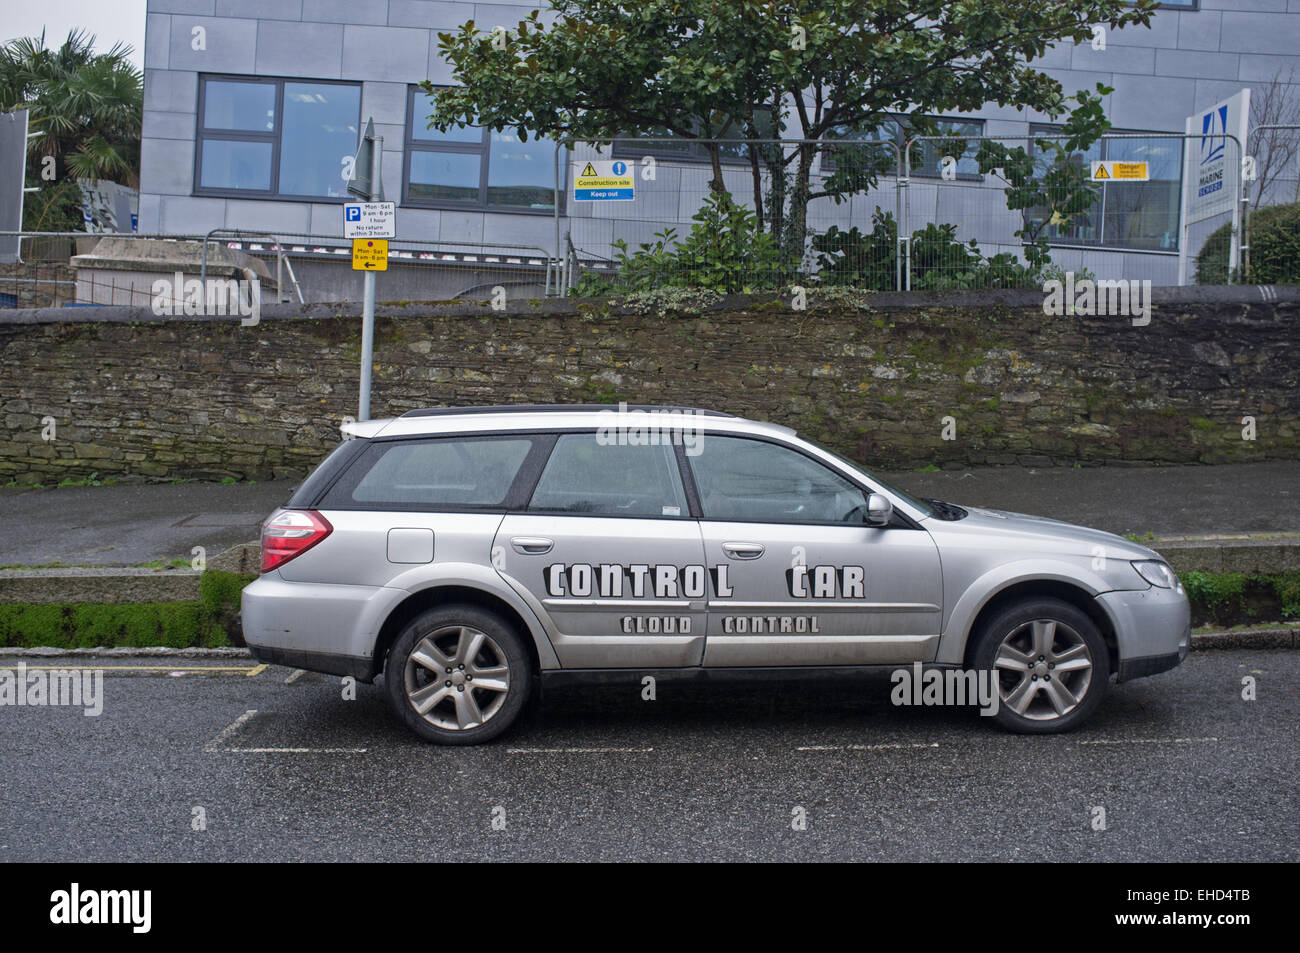 A car showing misleading/confusing messages on the side - Stock Image